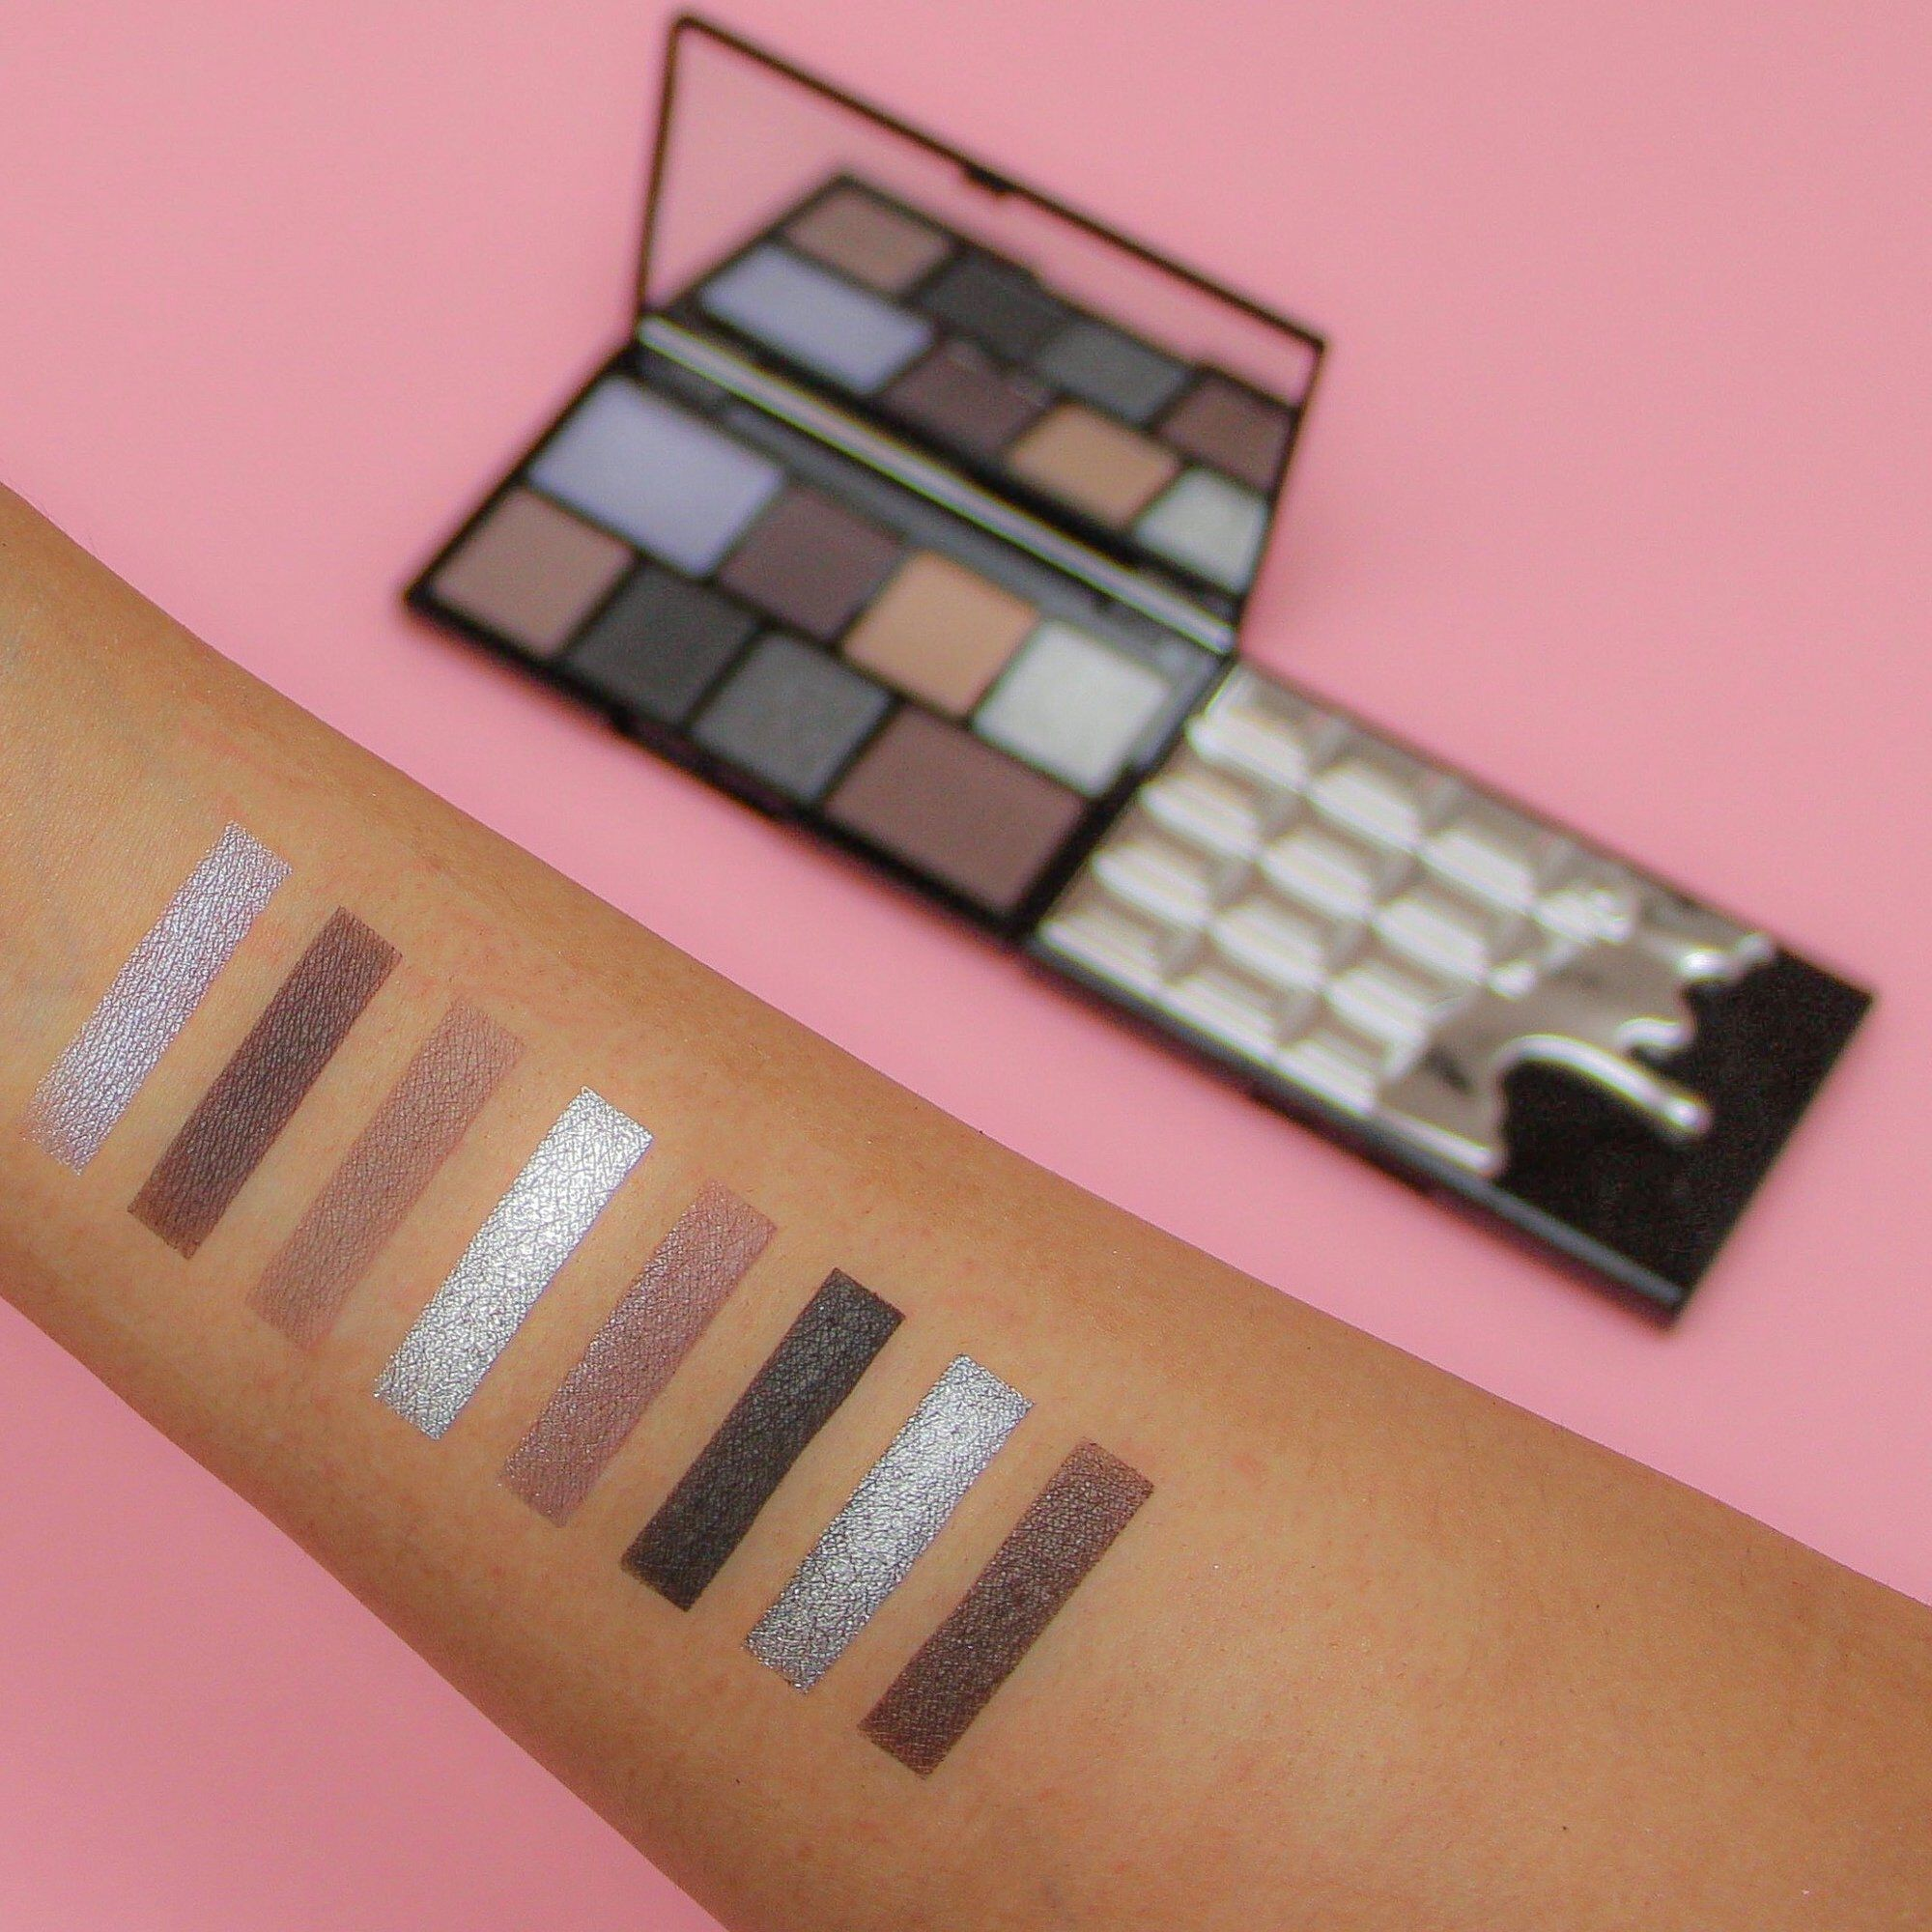 Mini Lidschatten-Palette - Mini Eyeshadow Palette